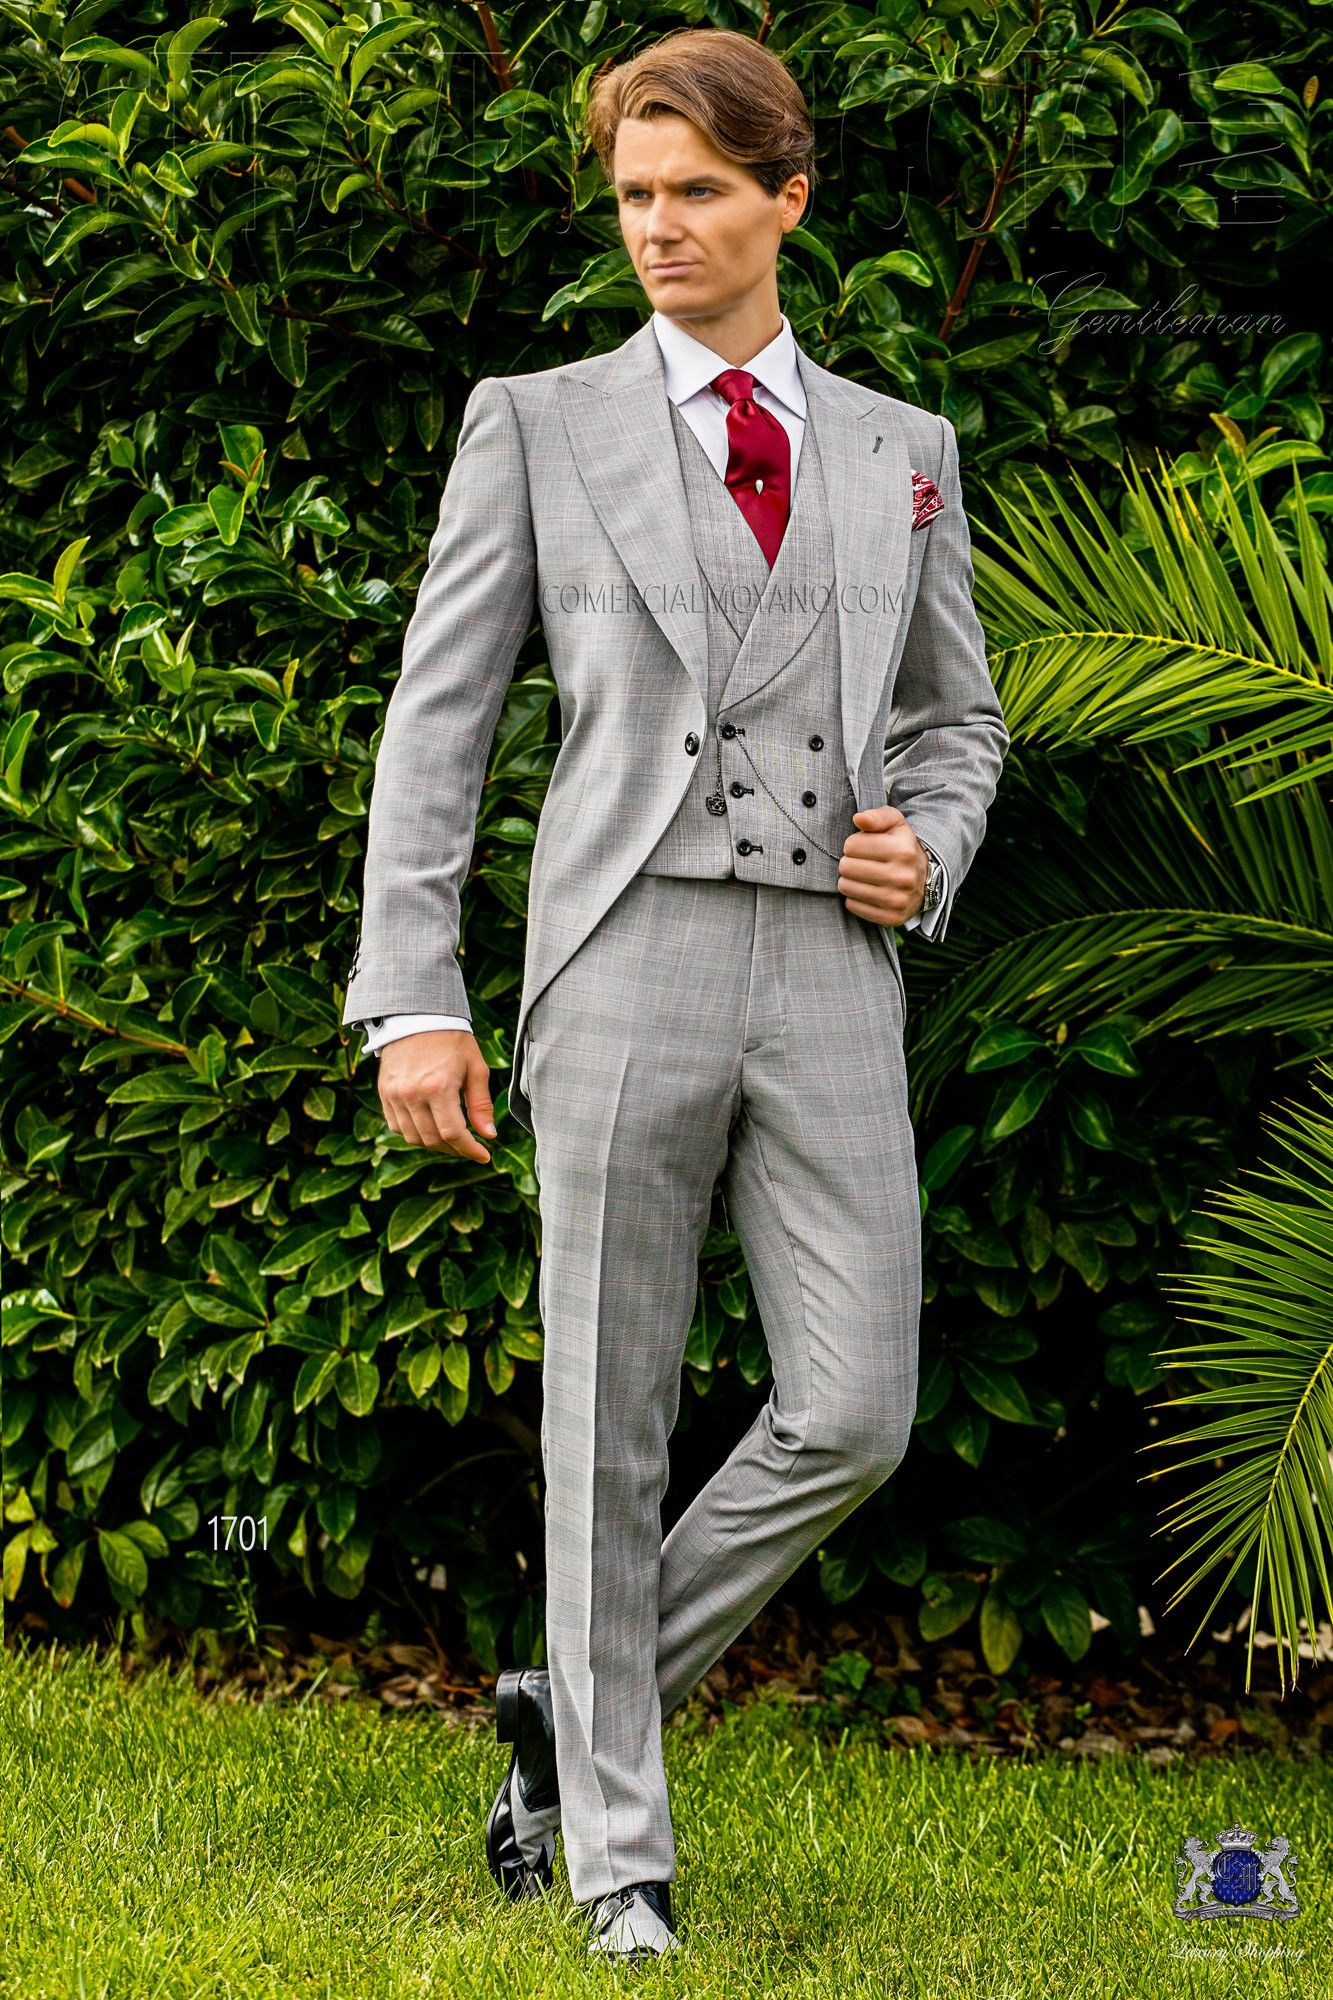 Italian bespoke light grey and red morning suit with wide peak lapels and 1  corozo button. Prince of Wales wool mix fabric. Wedding suit 1701 Gentleman  ... 9d58c825886